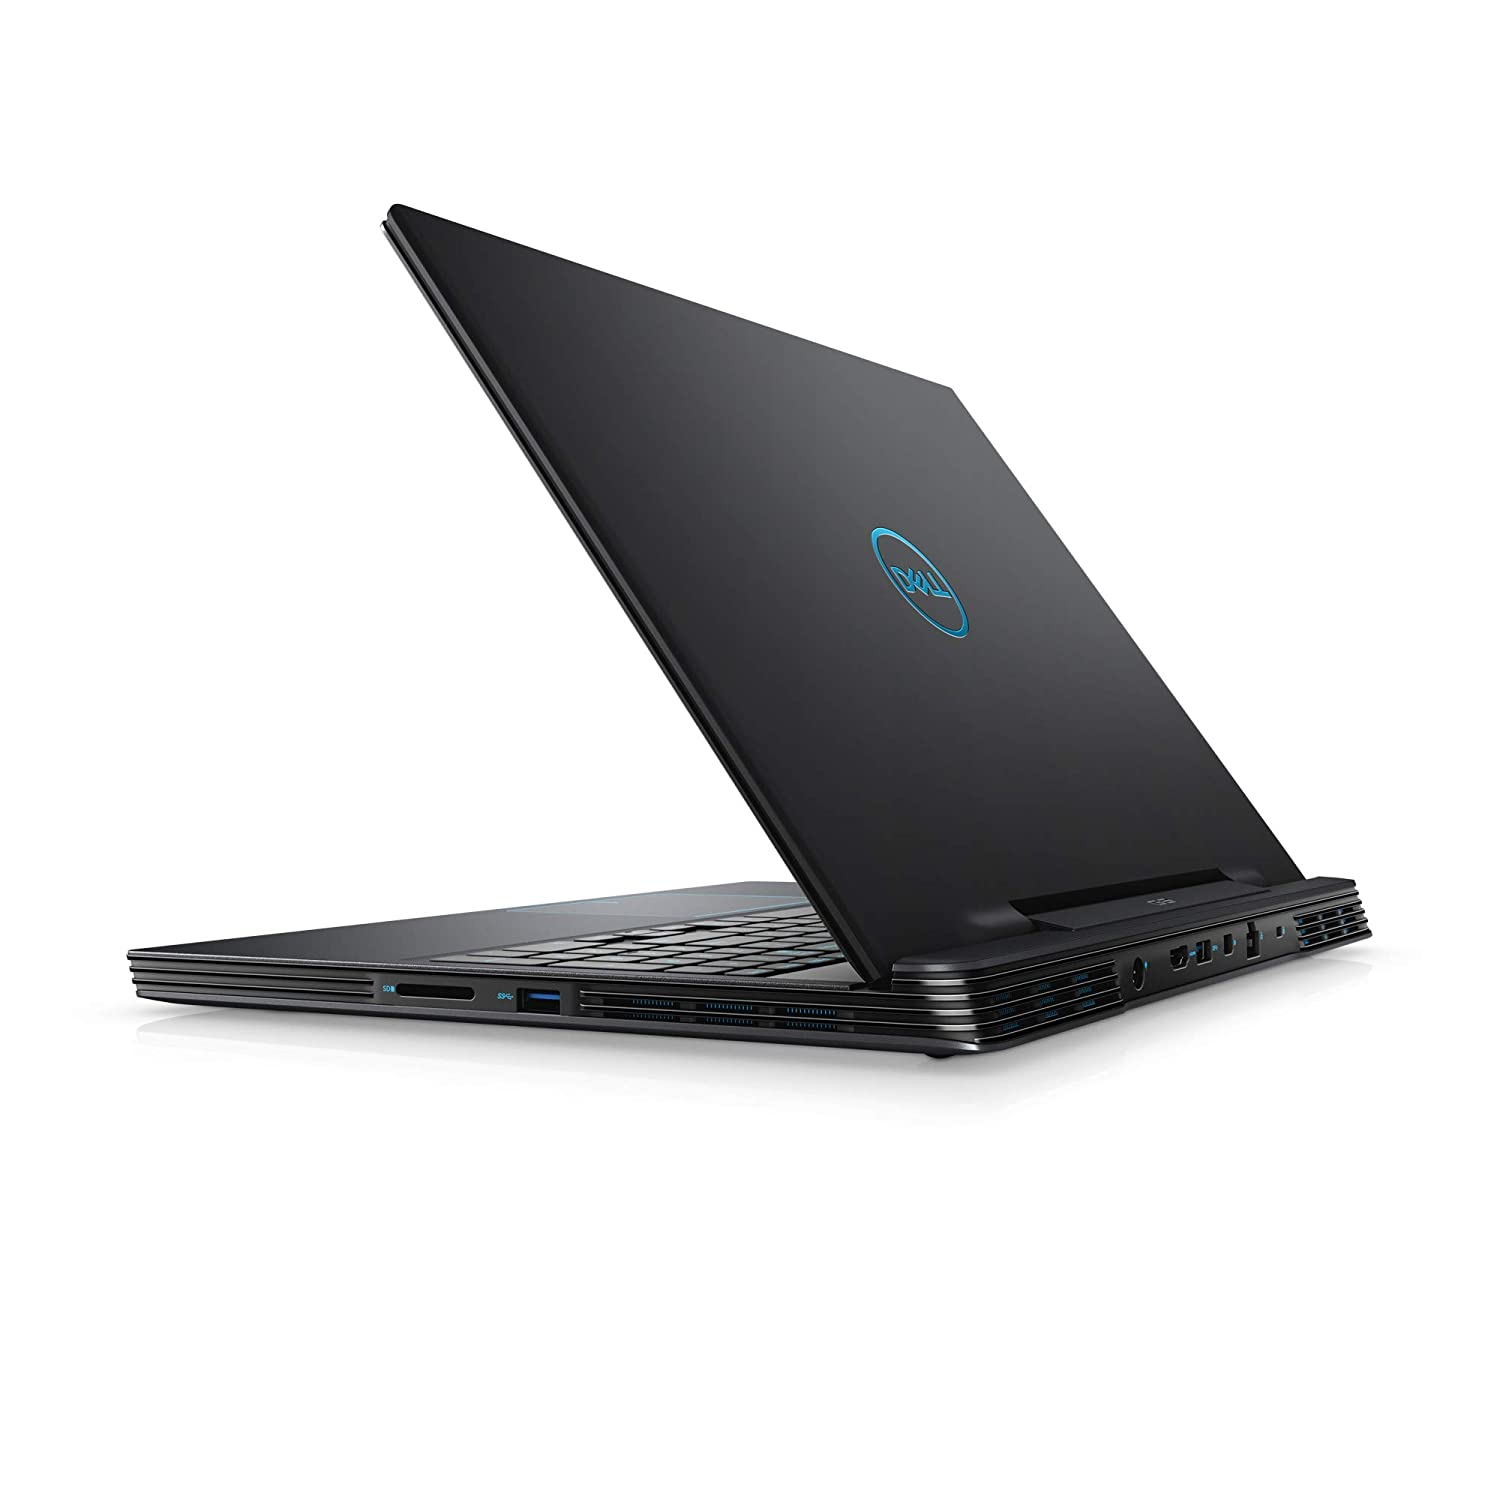 Dell G7 15 Laptop Reviews: A Solid Portable Computer for gamer